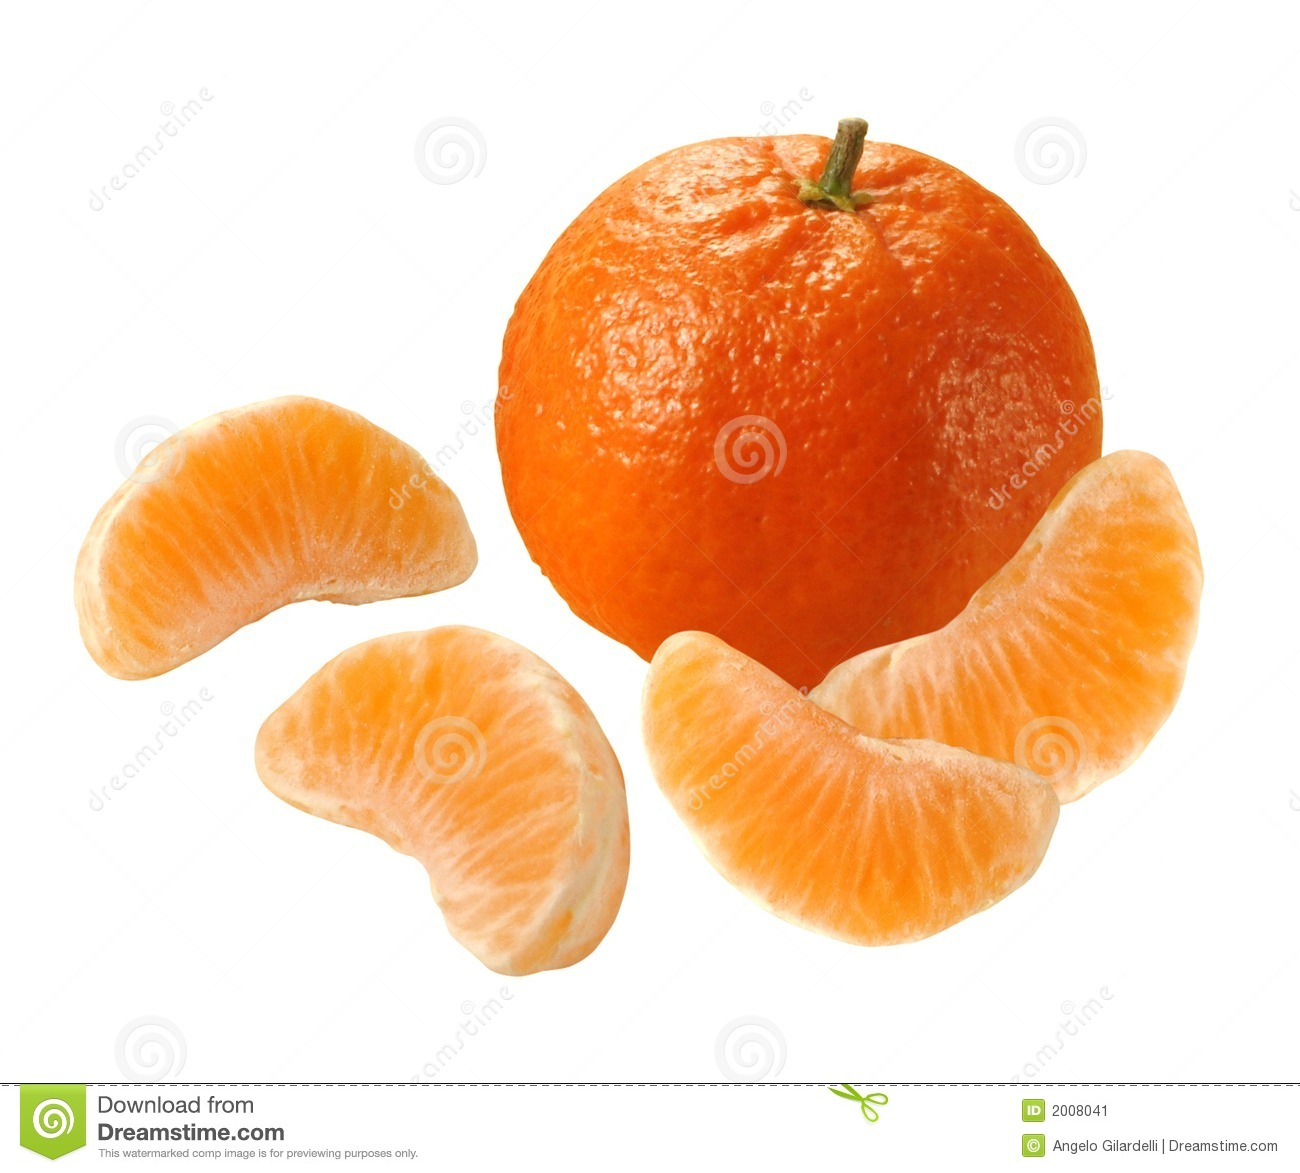 Tangerine with four segments isolated over white.